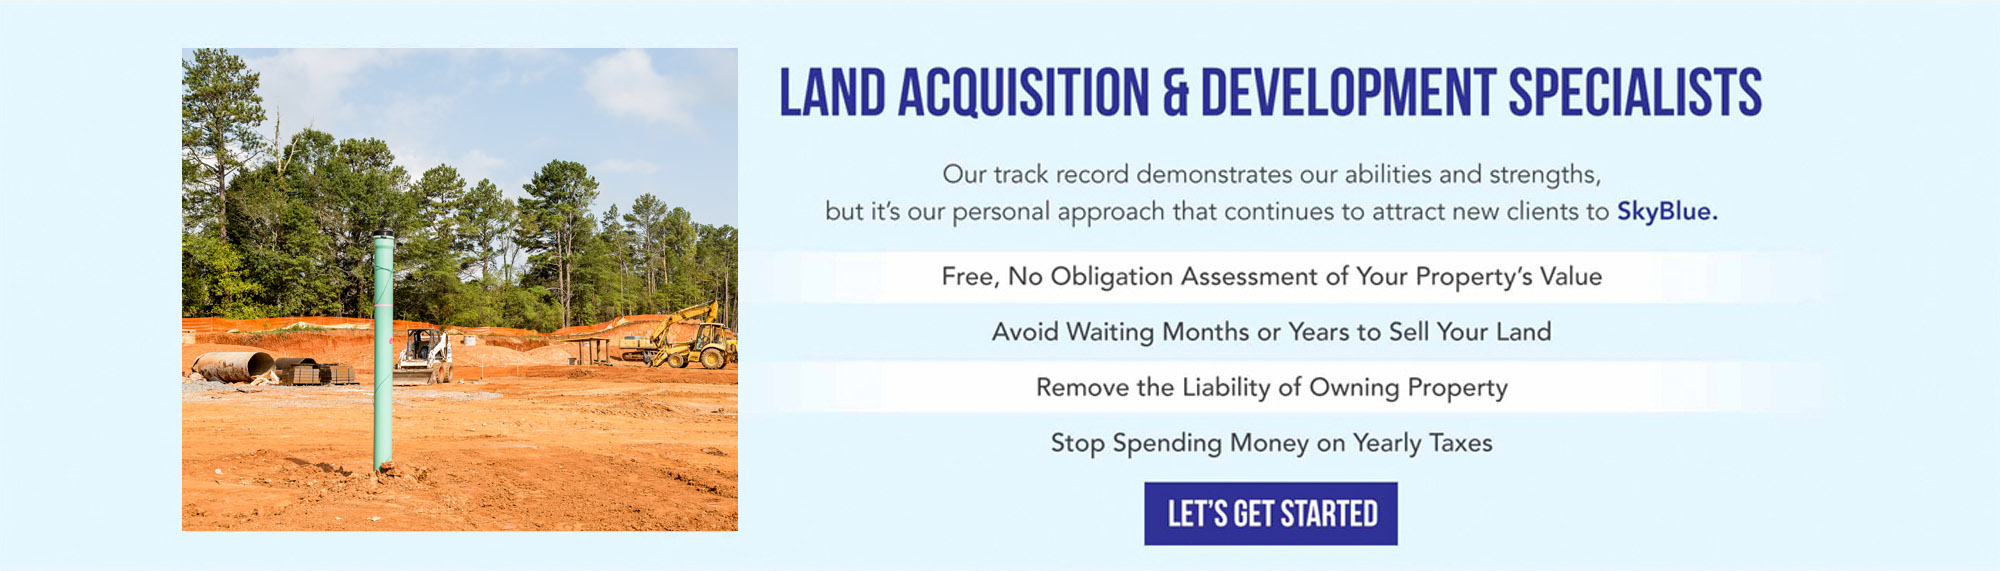 Land Acquisition and Development Specialists